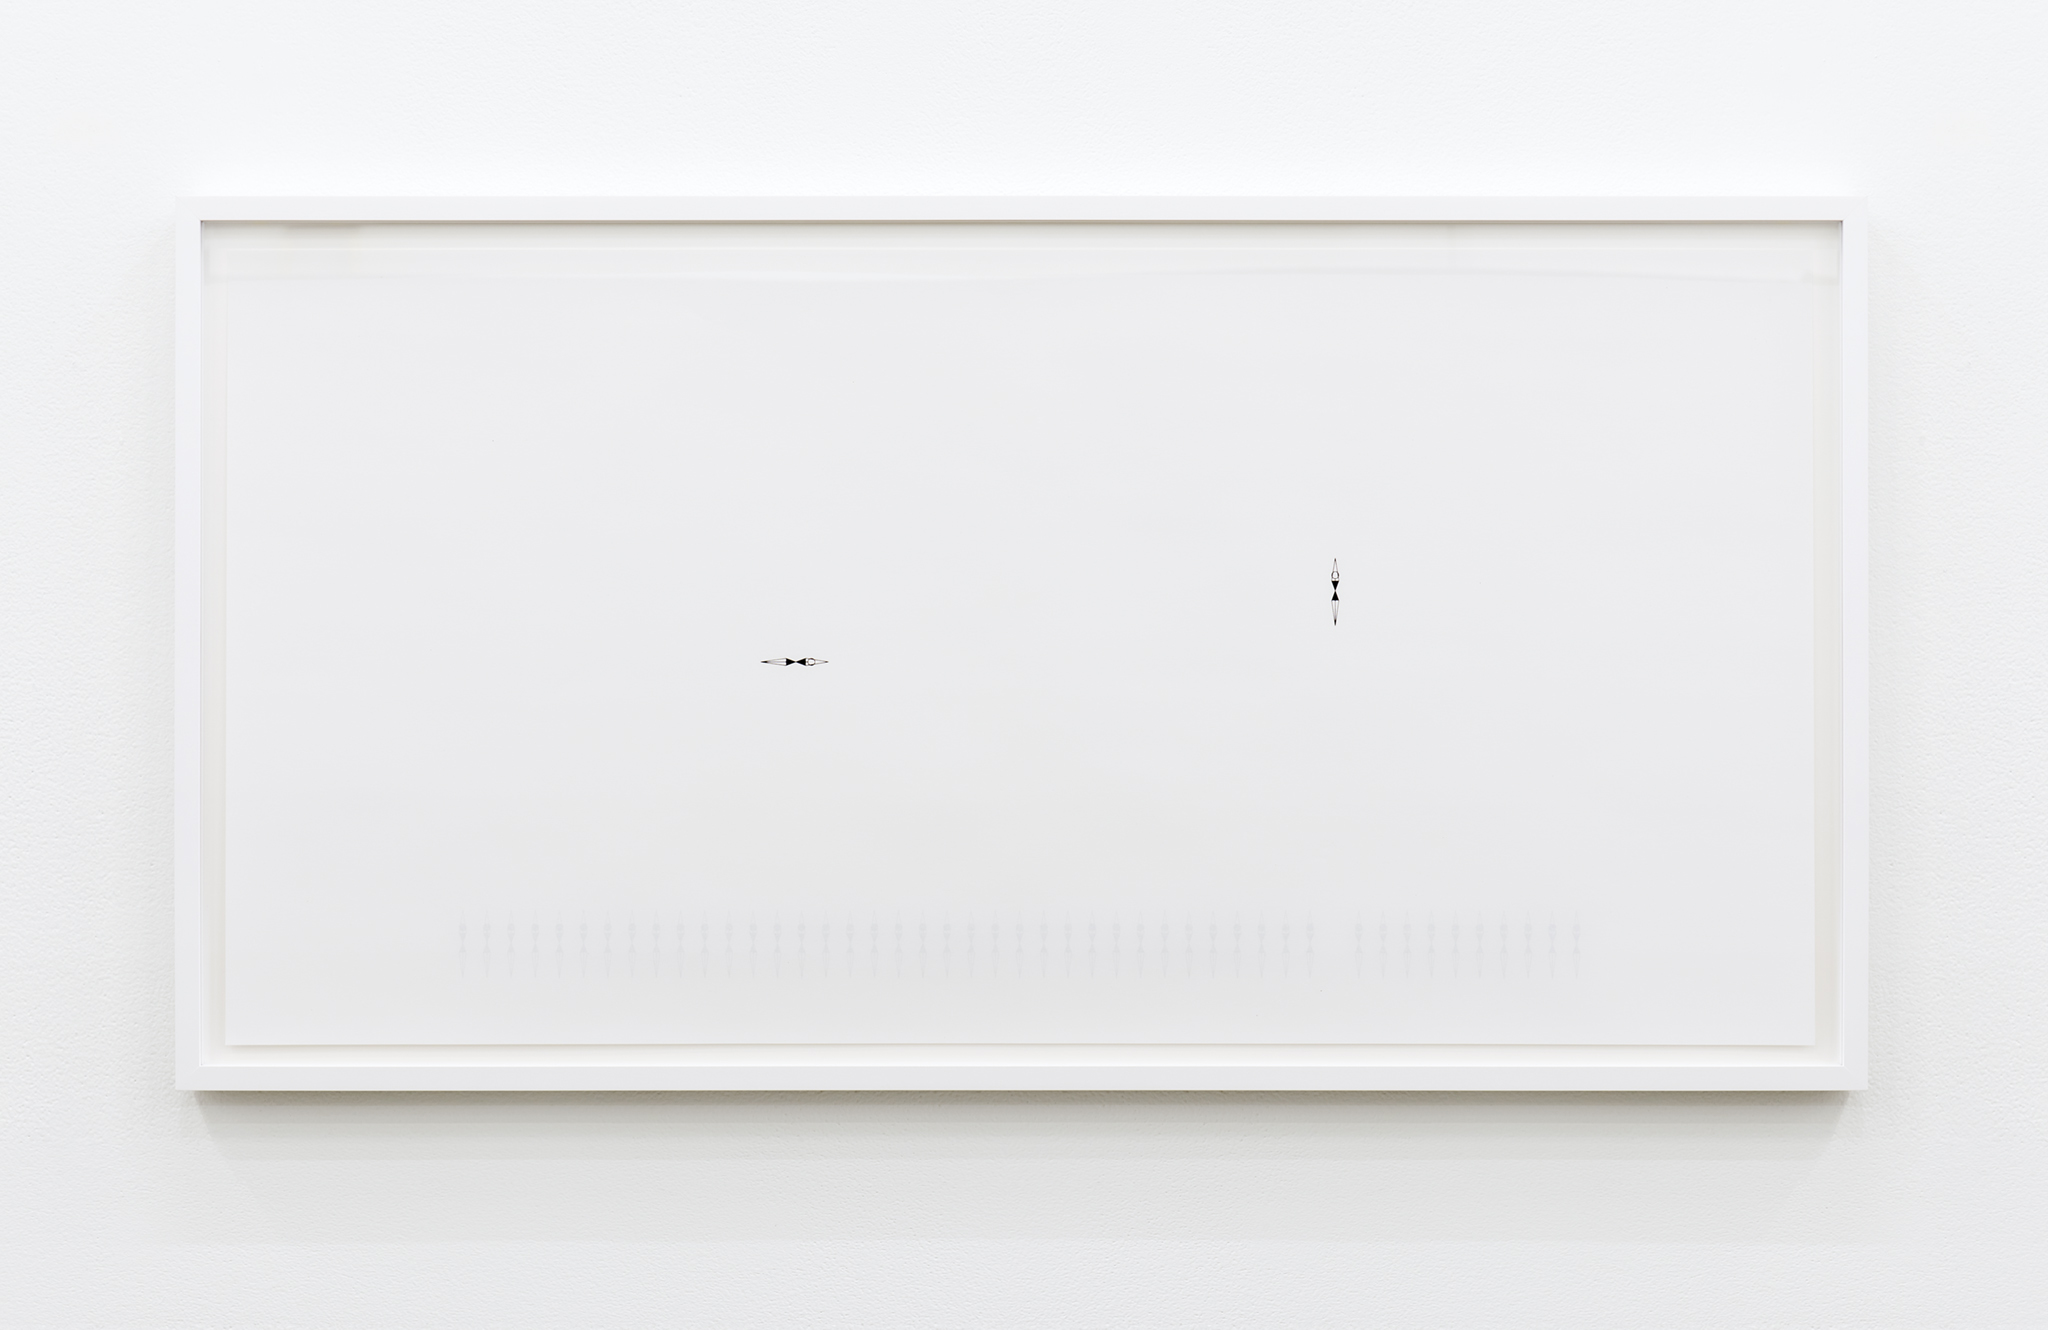 ​Janice Kerbel, Sync (Line), 2017, double sided silkscreen print on paper, 33 x 17 in. (84 x 42 cm)​​​ by